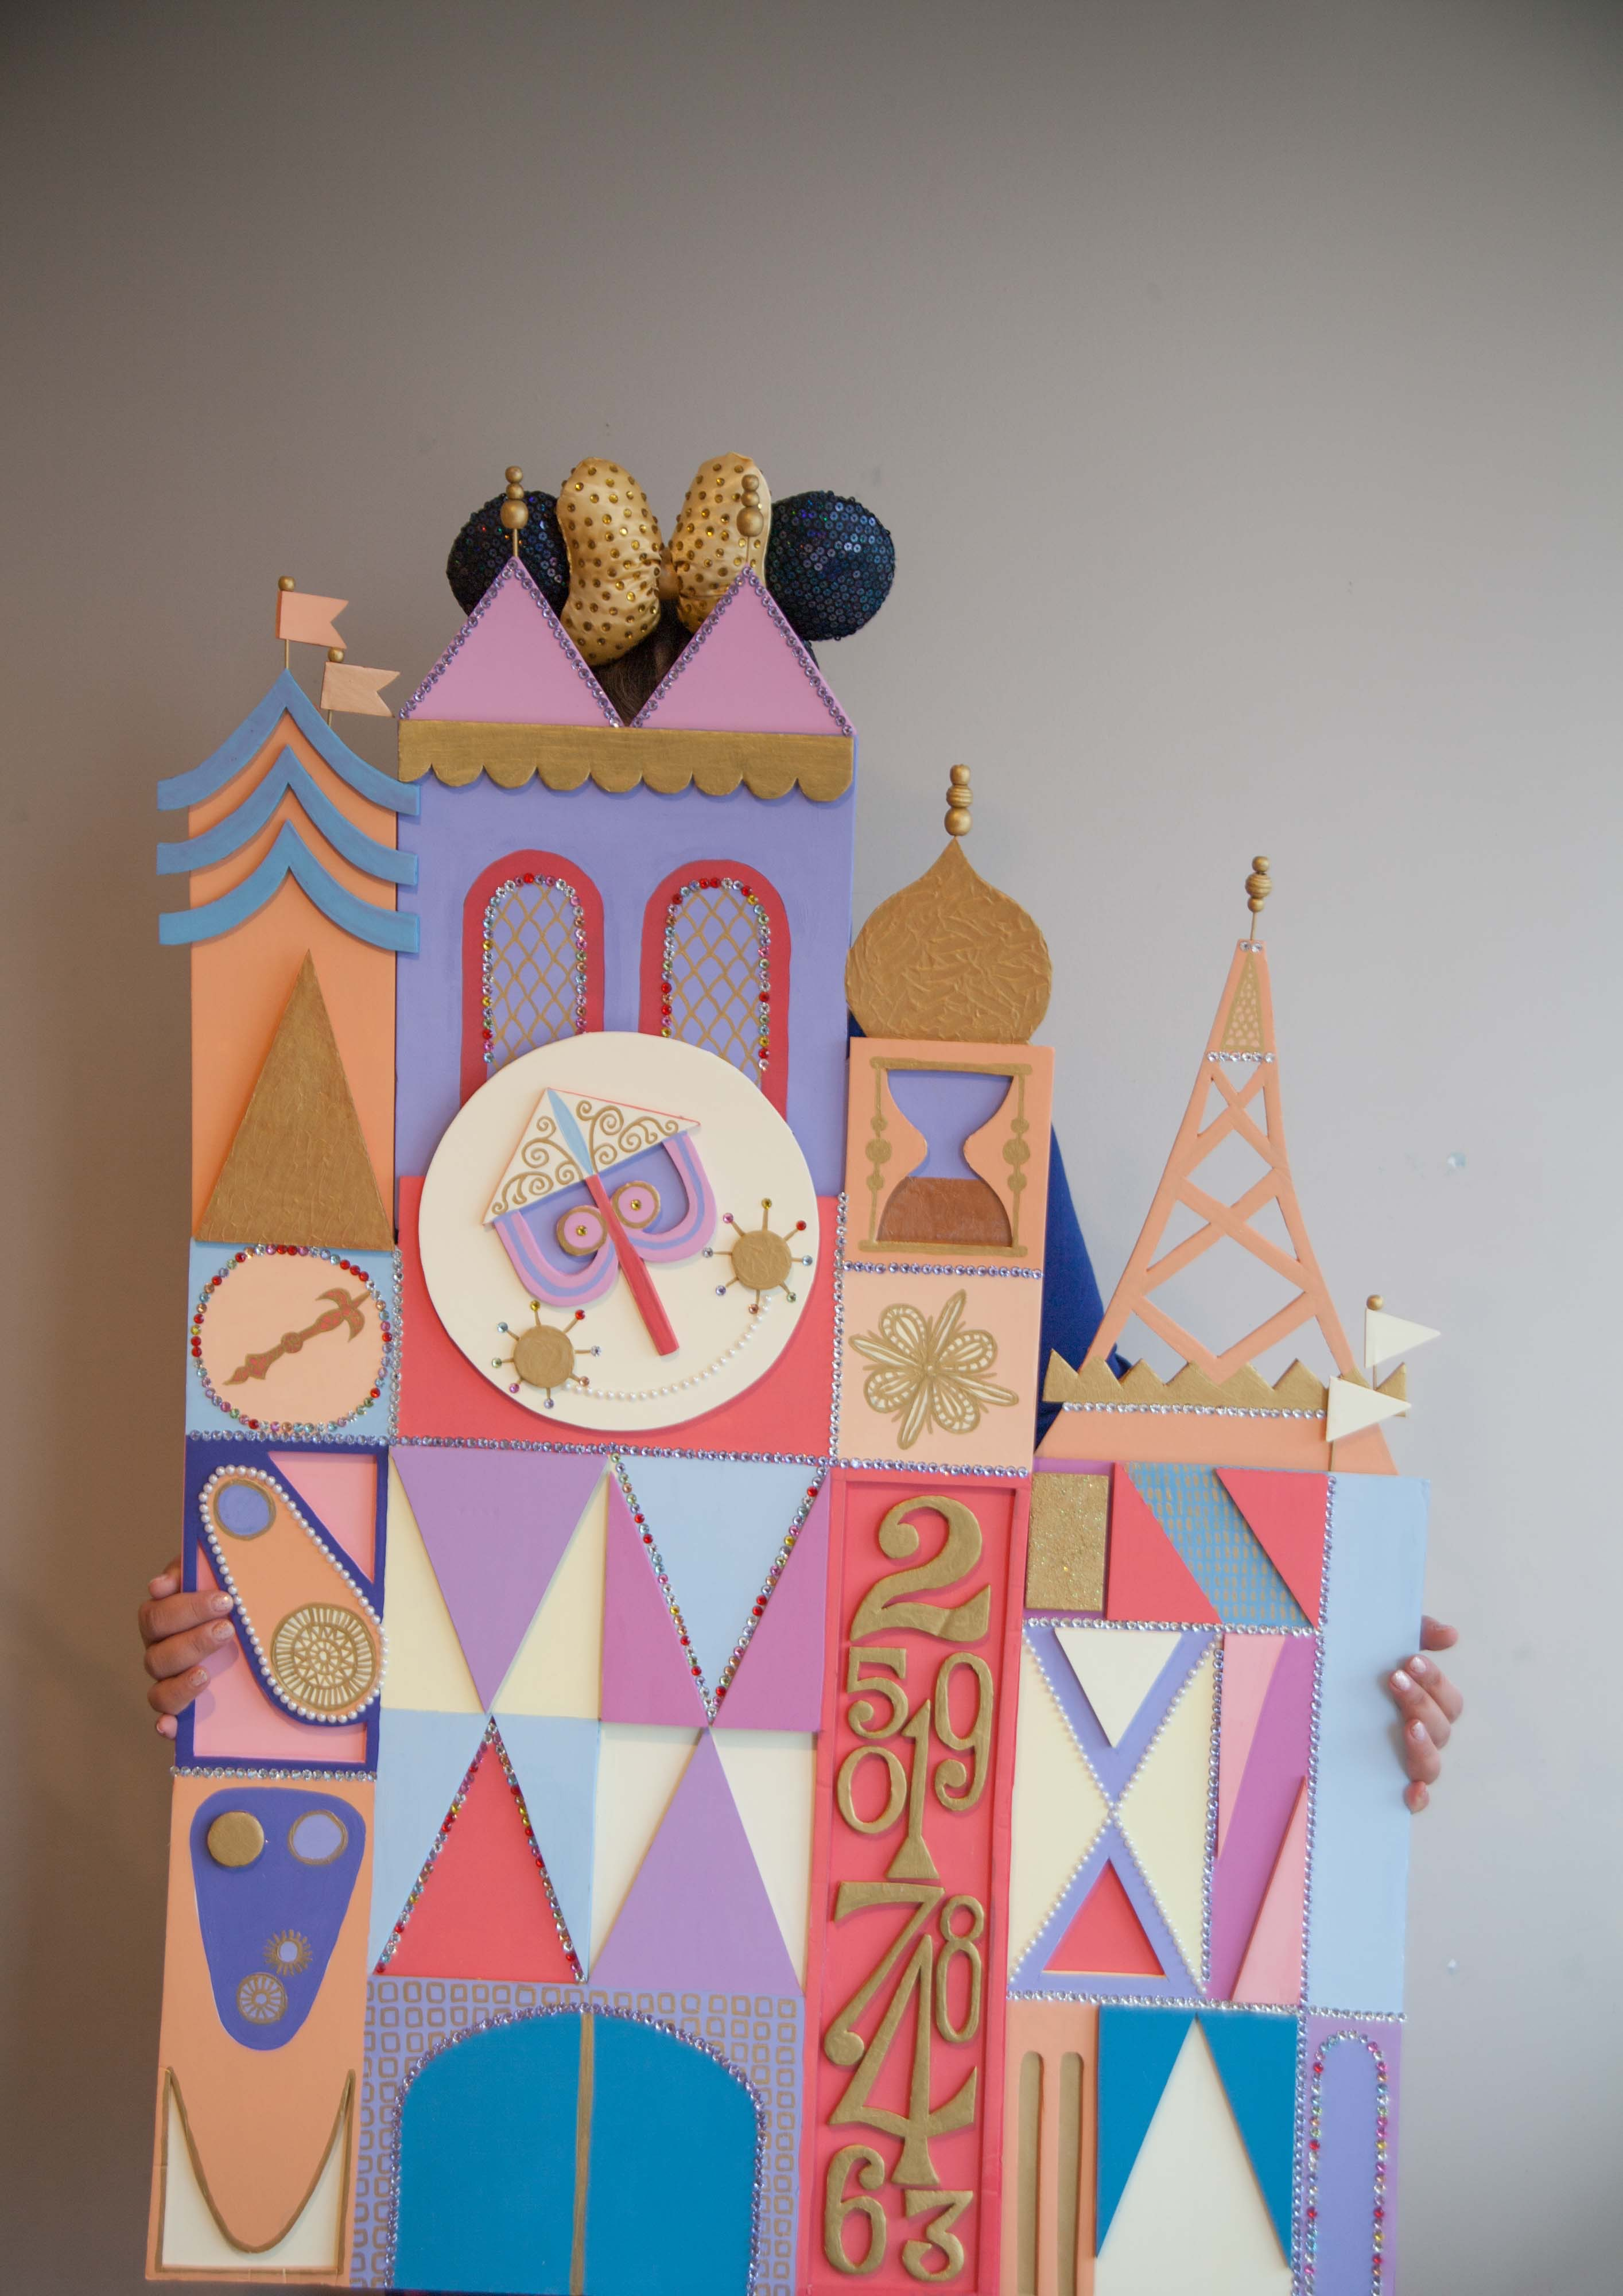 'It's a Small World' panel